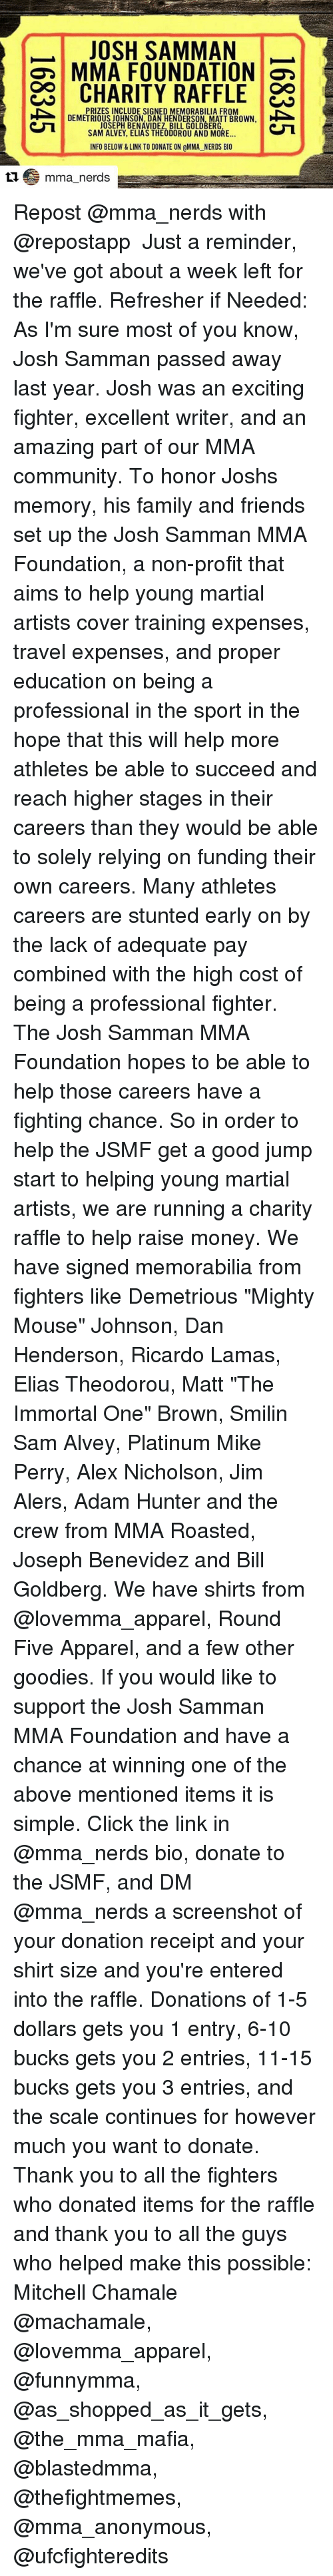 Https Meme I The Only Way To Look Beautiful Is Believe In 7726024 Precise Denzel T Sepatu Pria Hitam 38 Josh Samman Mma Foundation Go Charity Raffle 83 Prizes Include 11662705